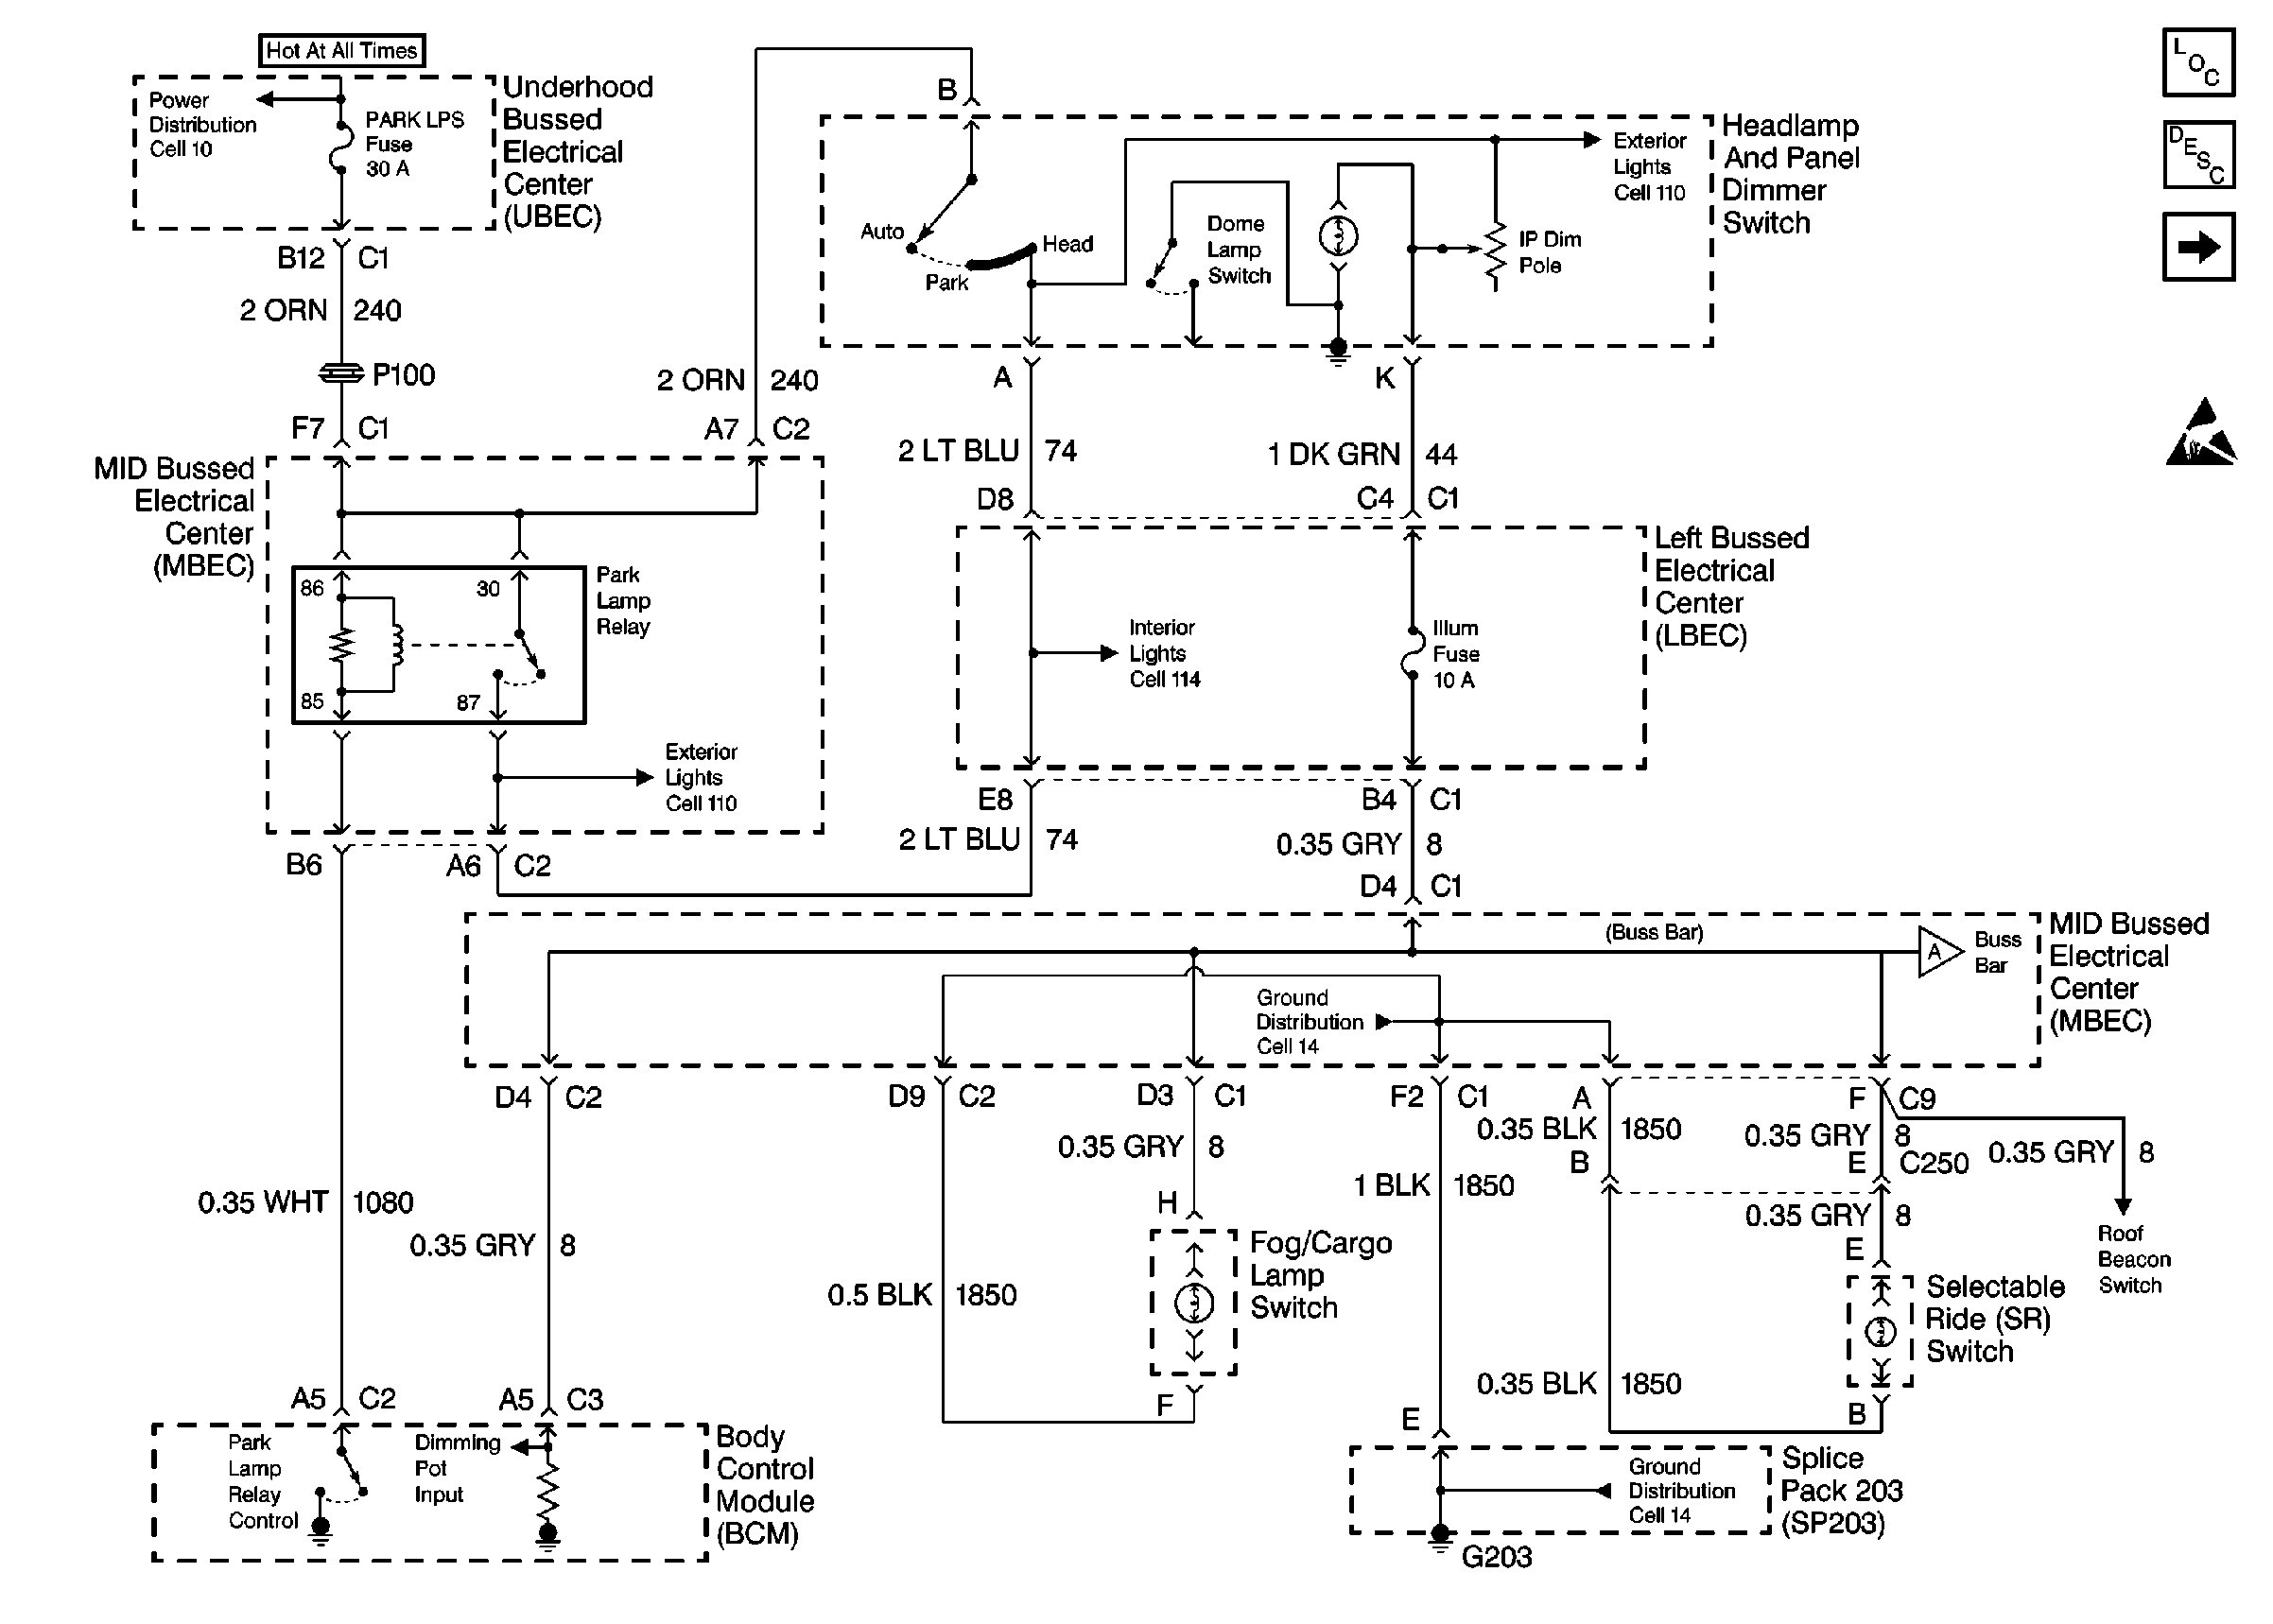 WRG-5660] 2007 Gmc Yukon Radio Wiring Diagram on